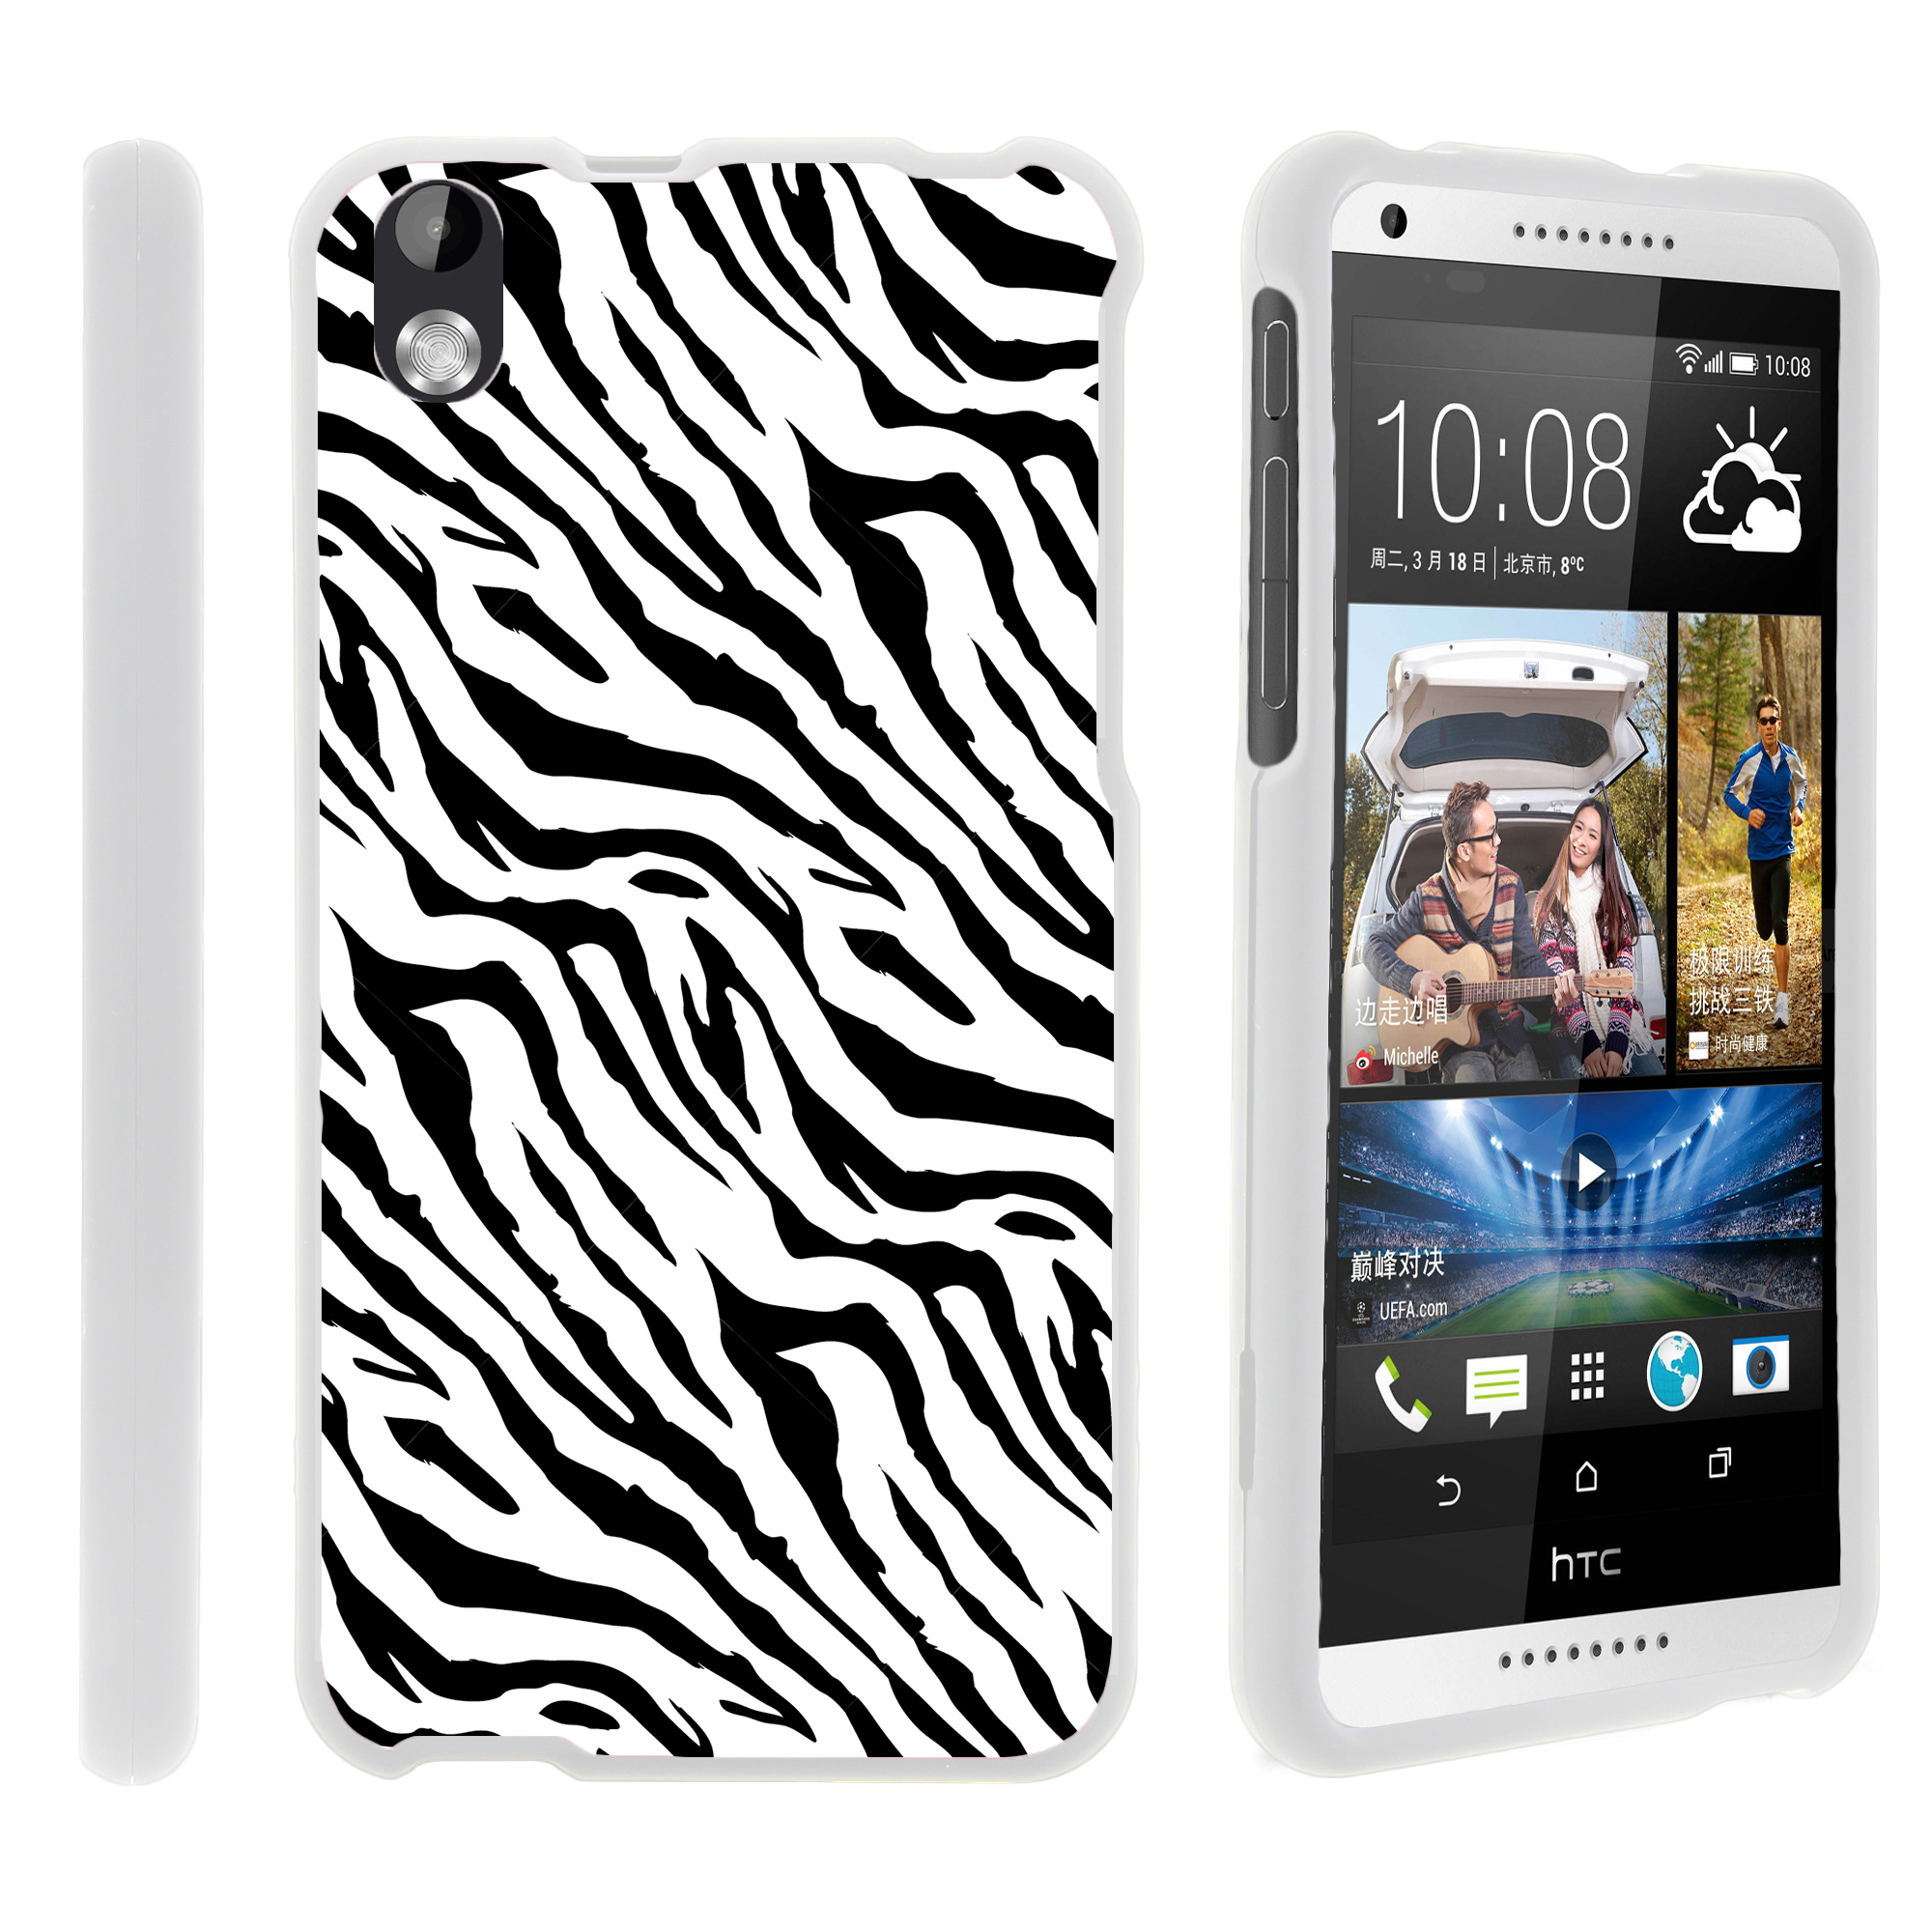 HTC Desire 816, [SNAP SHELL][White] 2 Piece Snap On Rubberized Hard White Plastic Cell Phone Case with Exclusive Art - Zebra Pattern